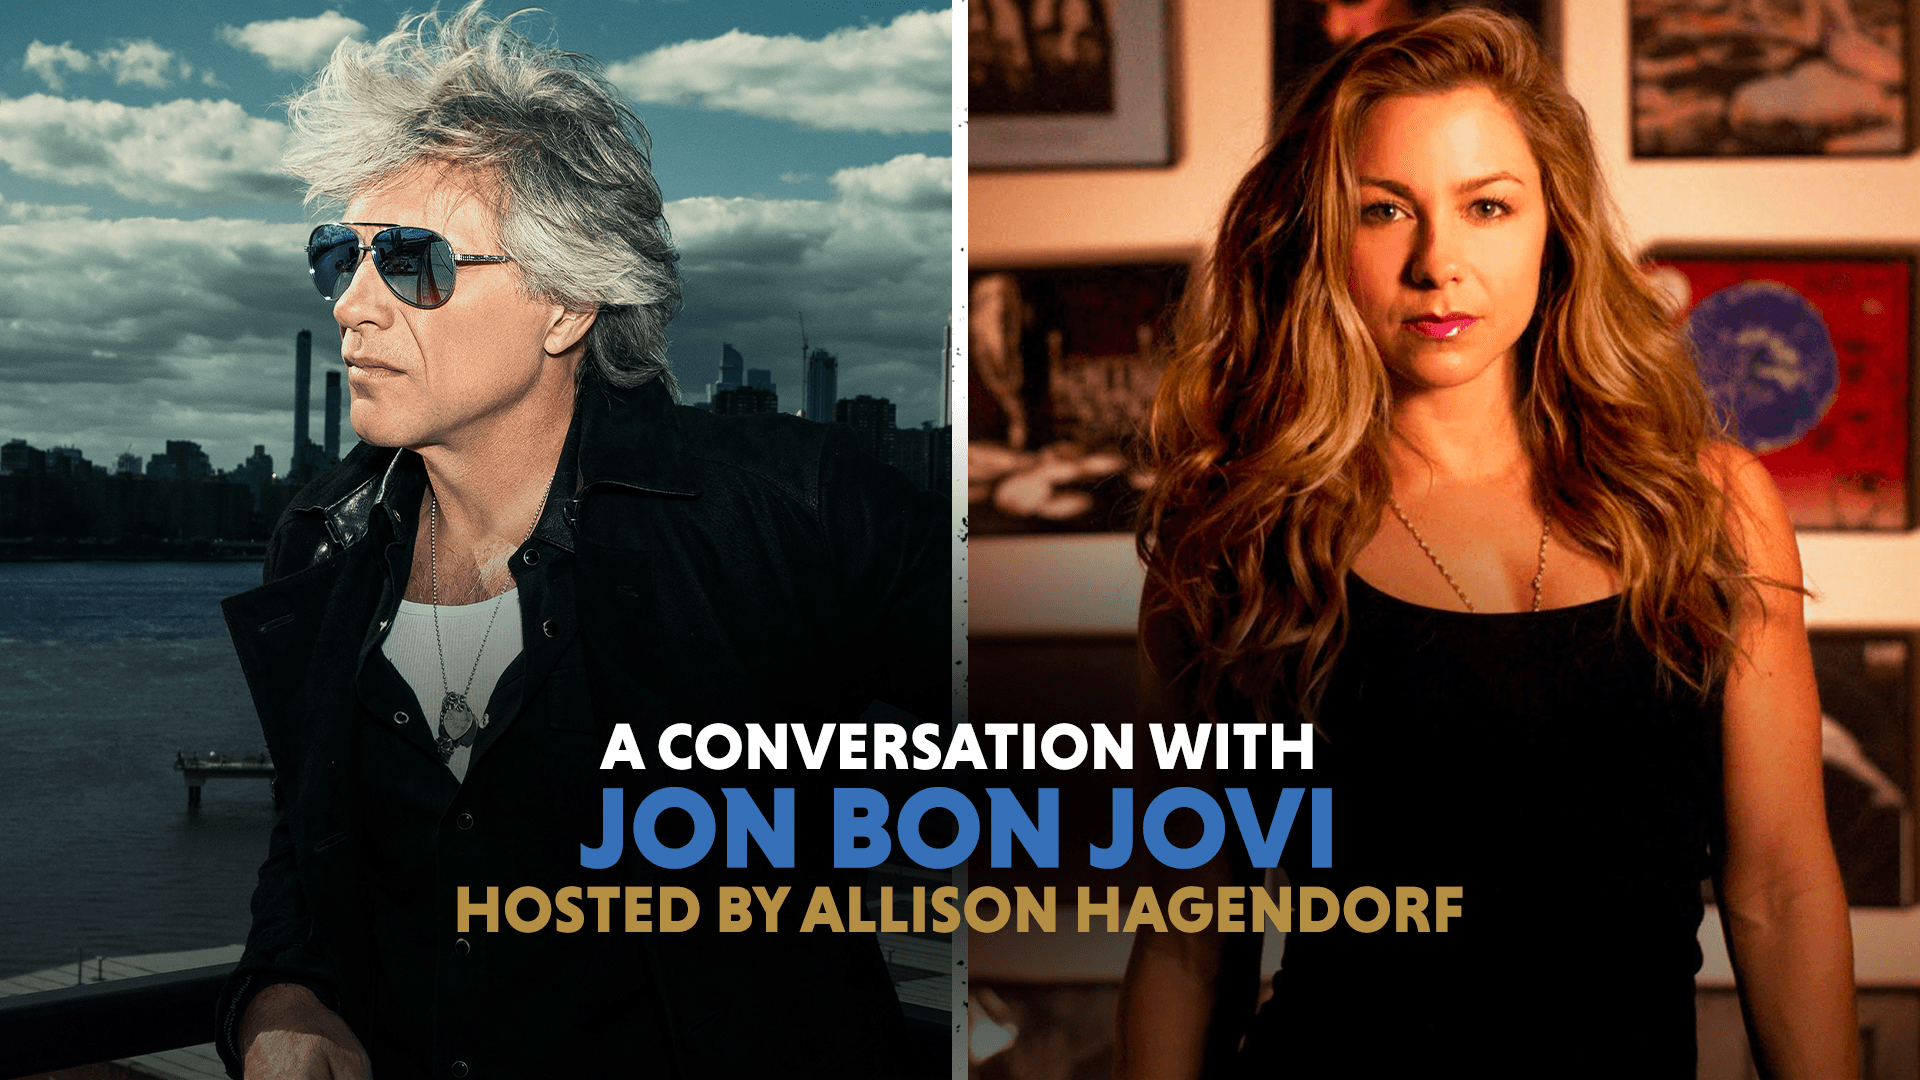 AXS TV Presents: A Conversation with Jon Bon Jovi